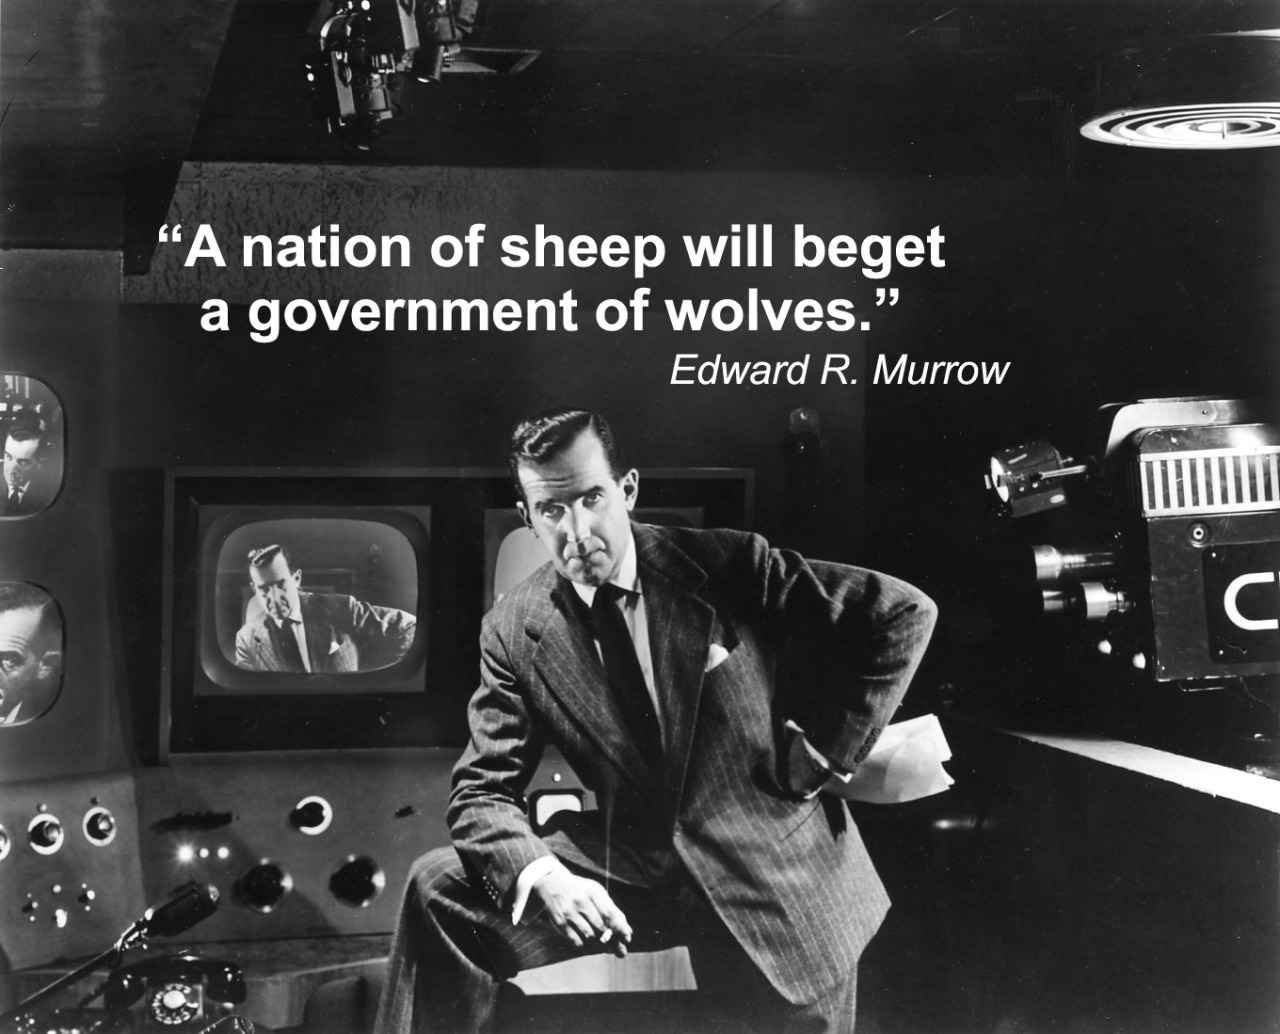 """A nation of sheep will beget a government of wolves."" ― Edward R. Murrow"